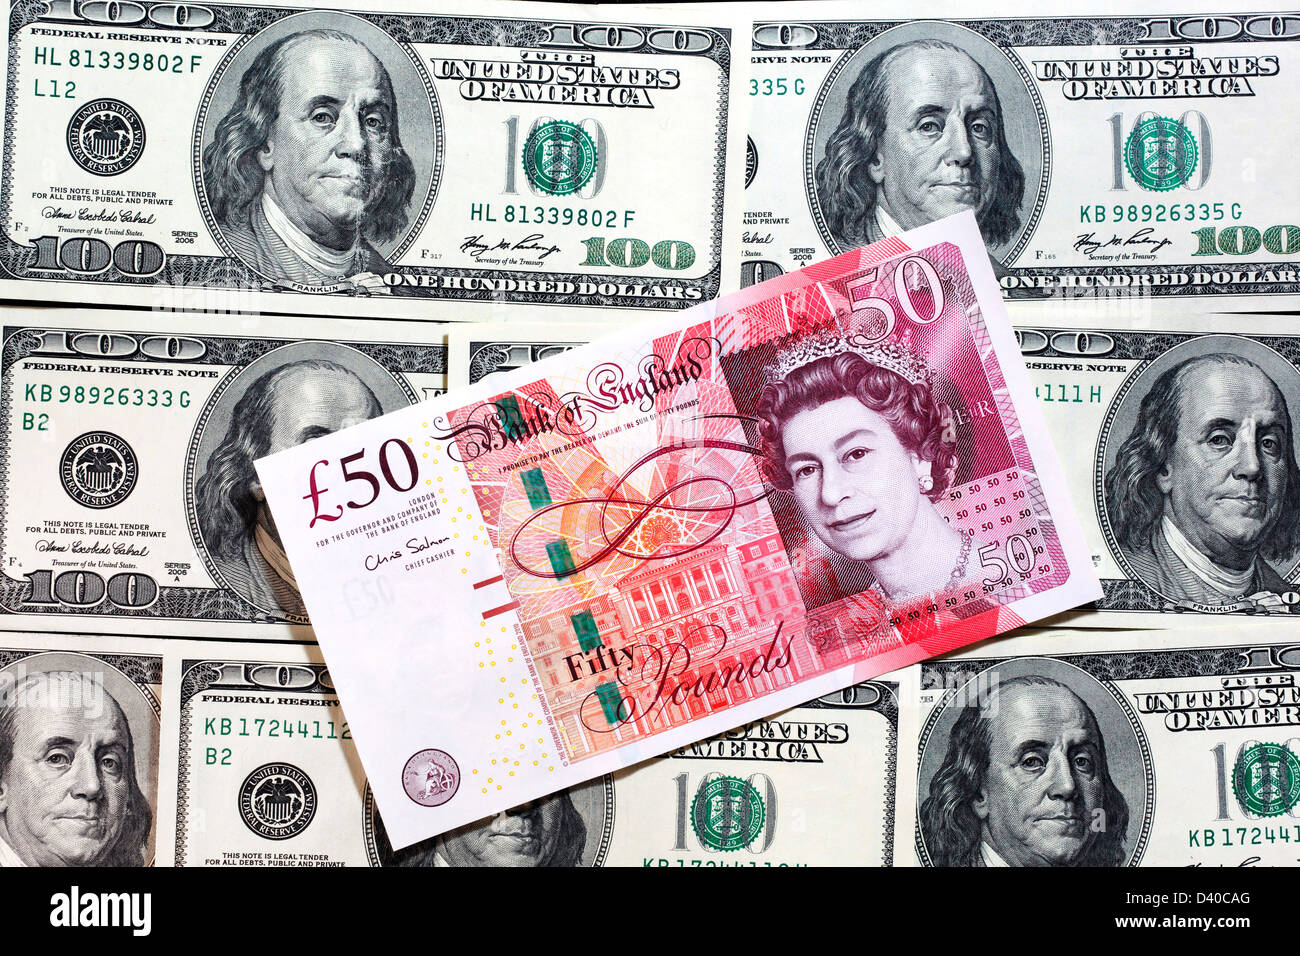 Convert 20 GBP / 20 USD to major currencies